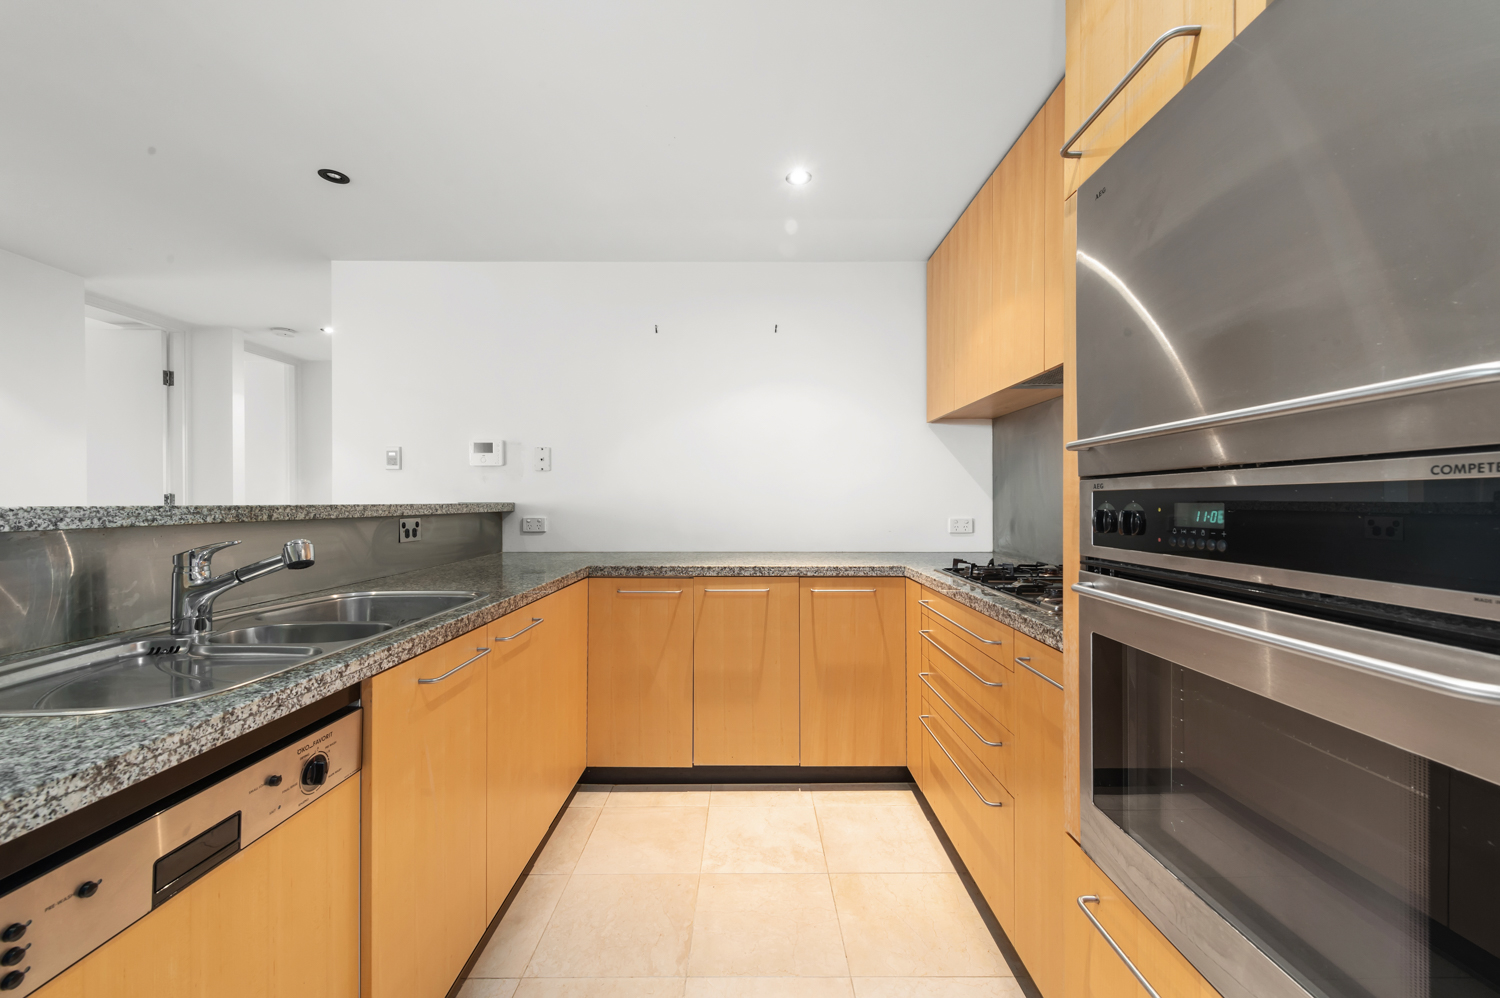 152-299-queen-street-melbourne-student-accommodation-Melbourne-Kitchen-2-Unilodgers